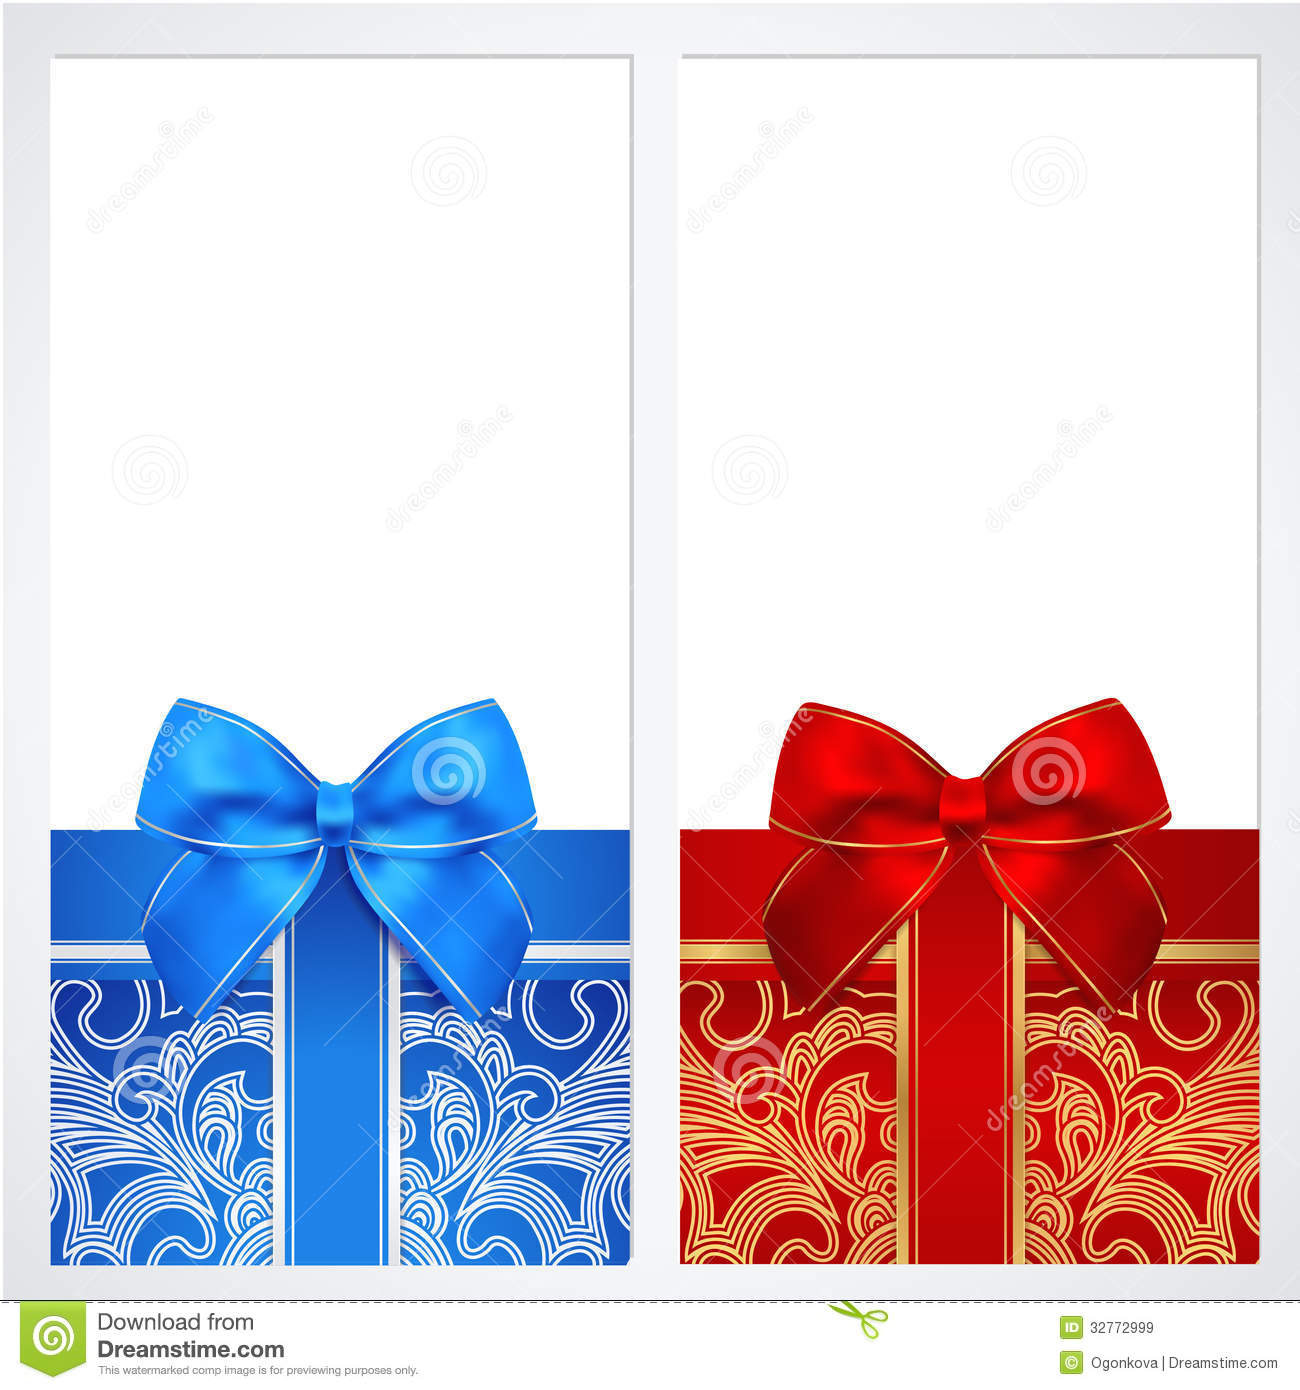 Voucher, Gift certificate, Coupon template. Box